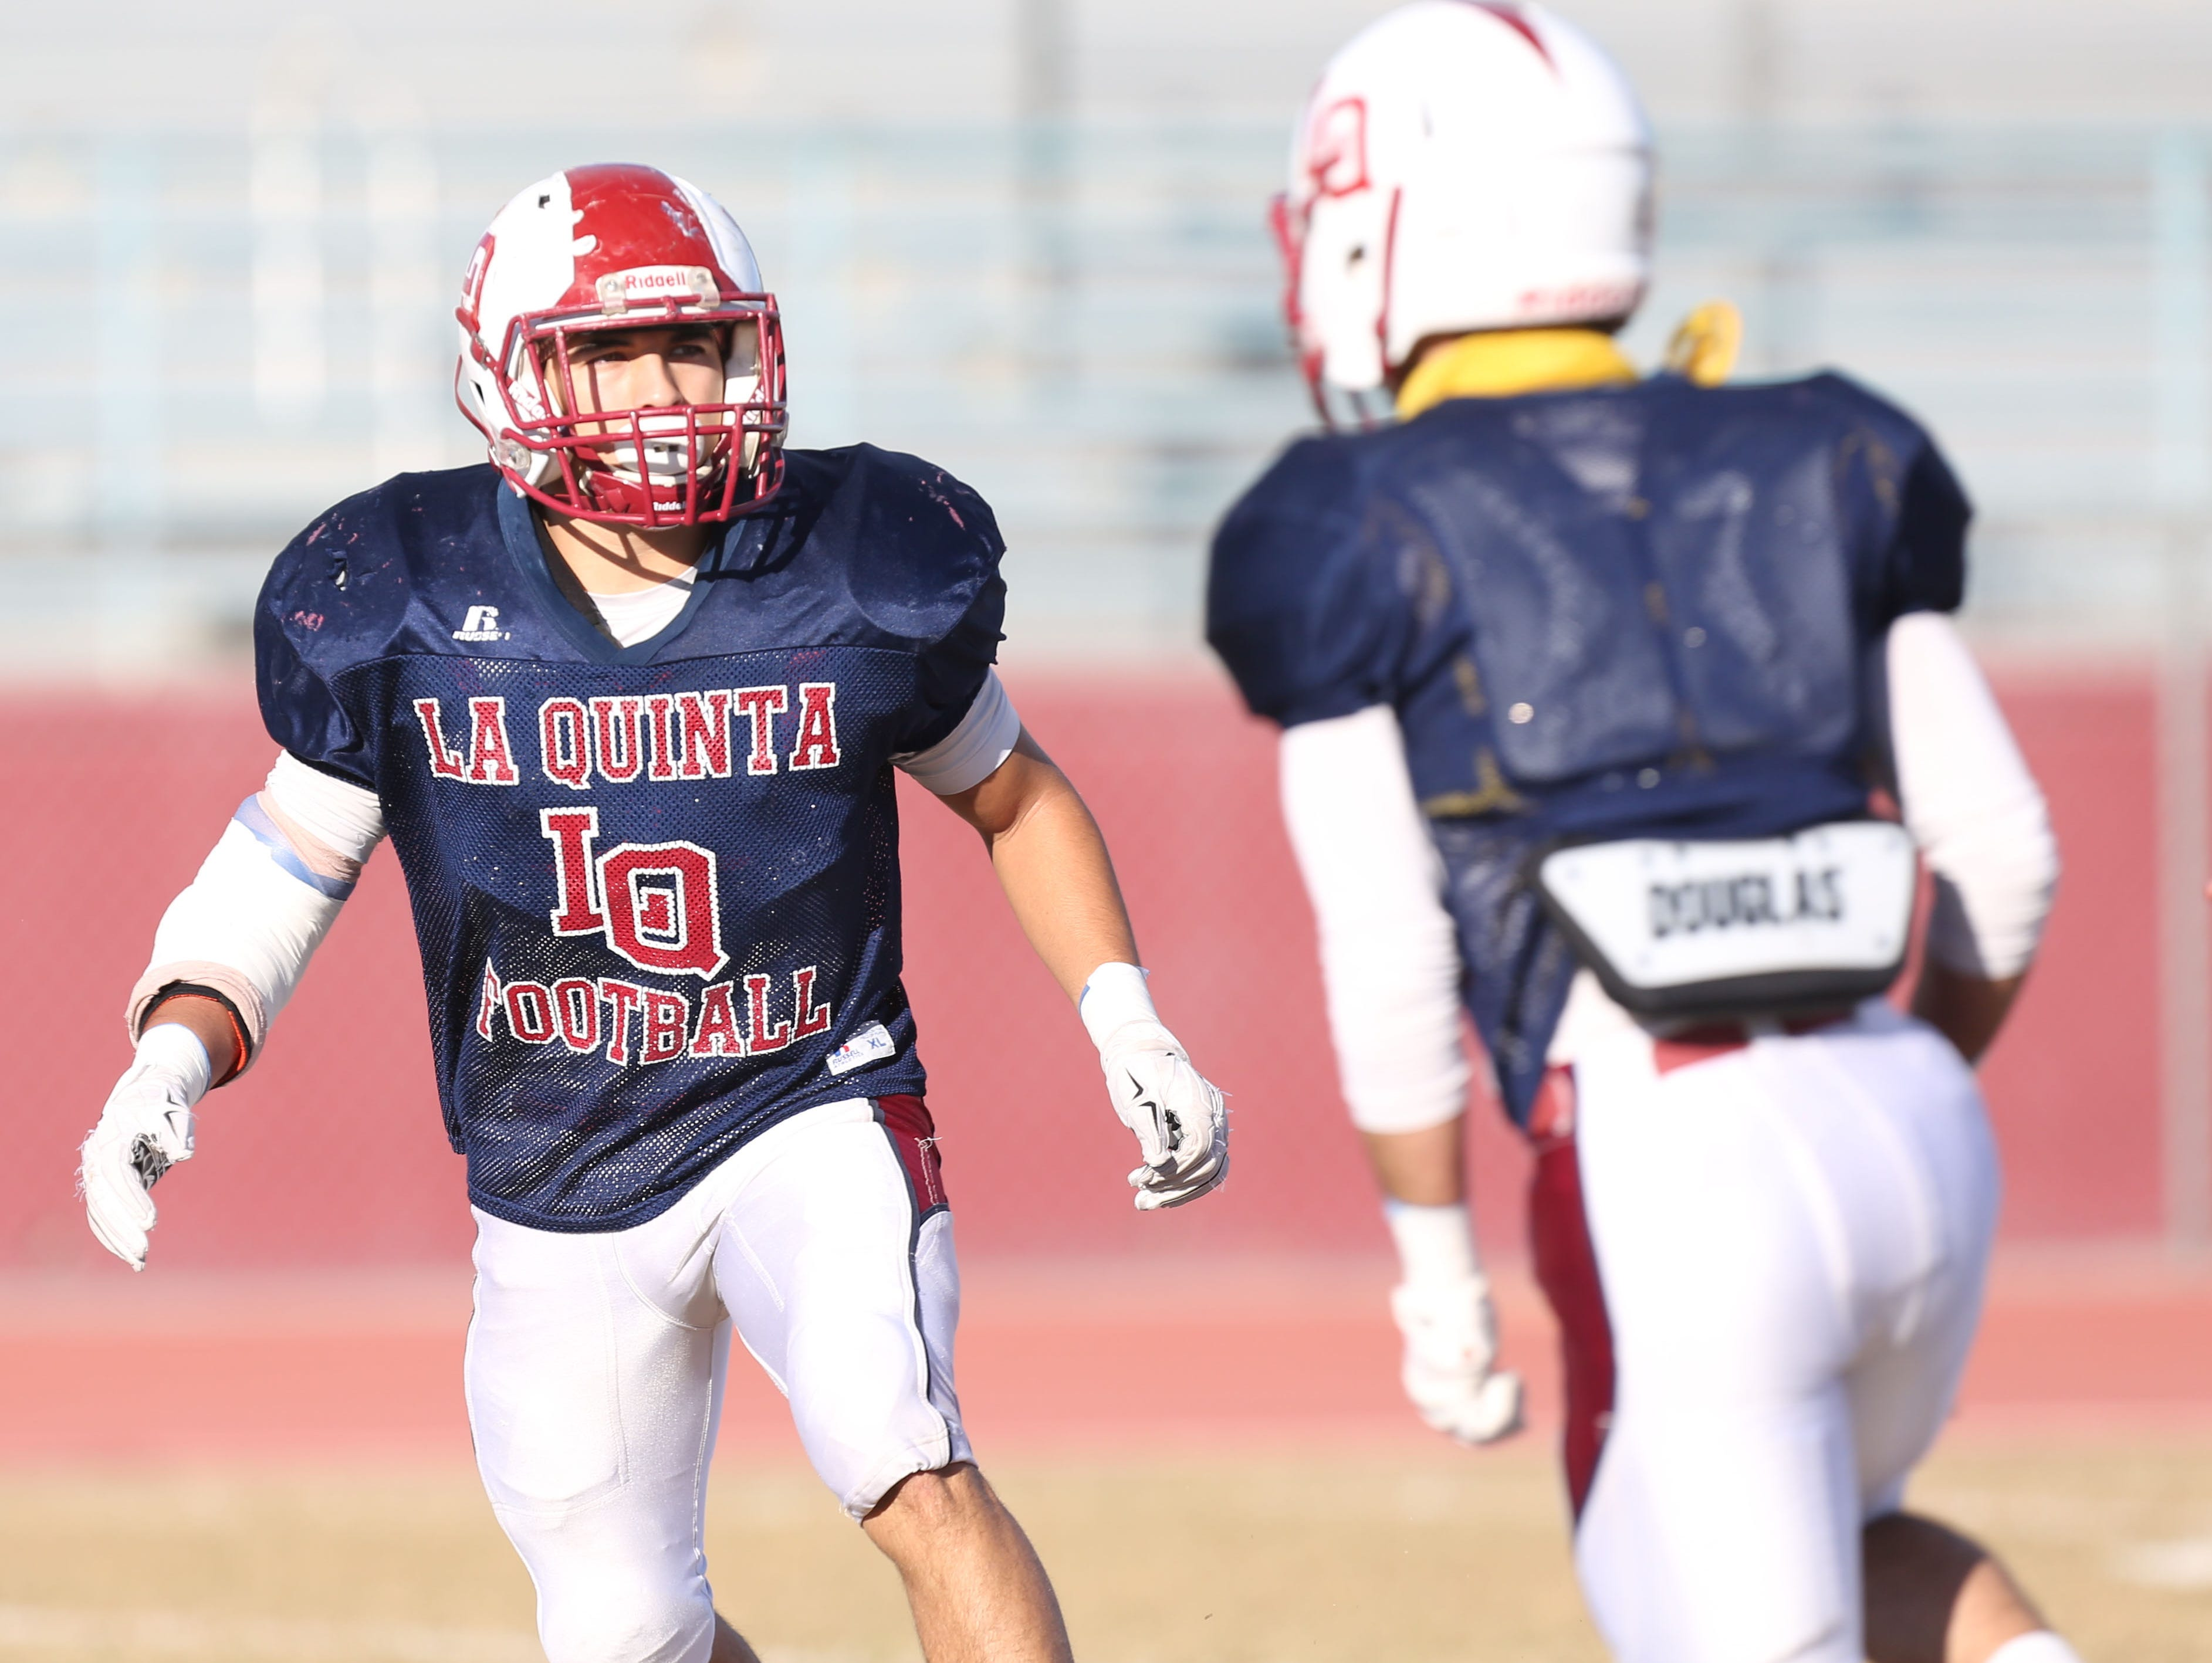 La Quinta High School running back is photographed at his school on November 25, 2015.